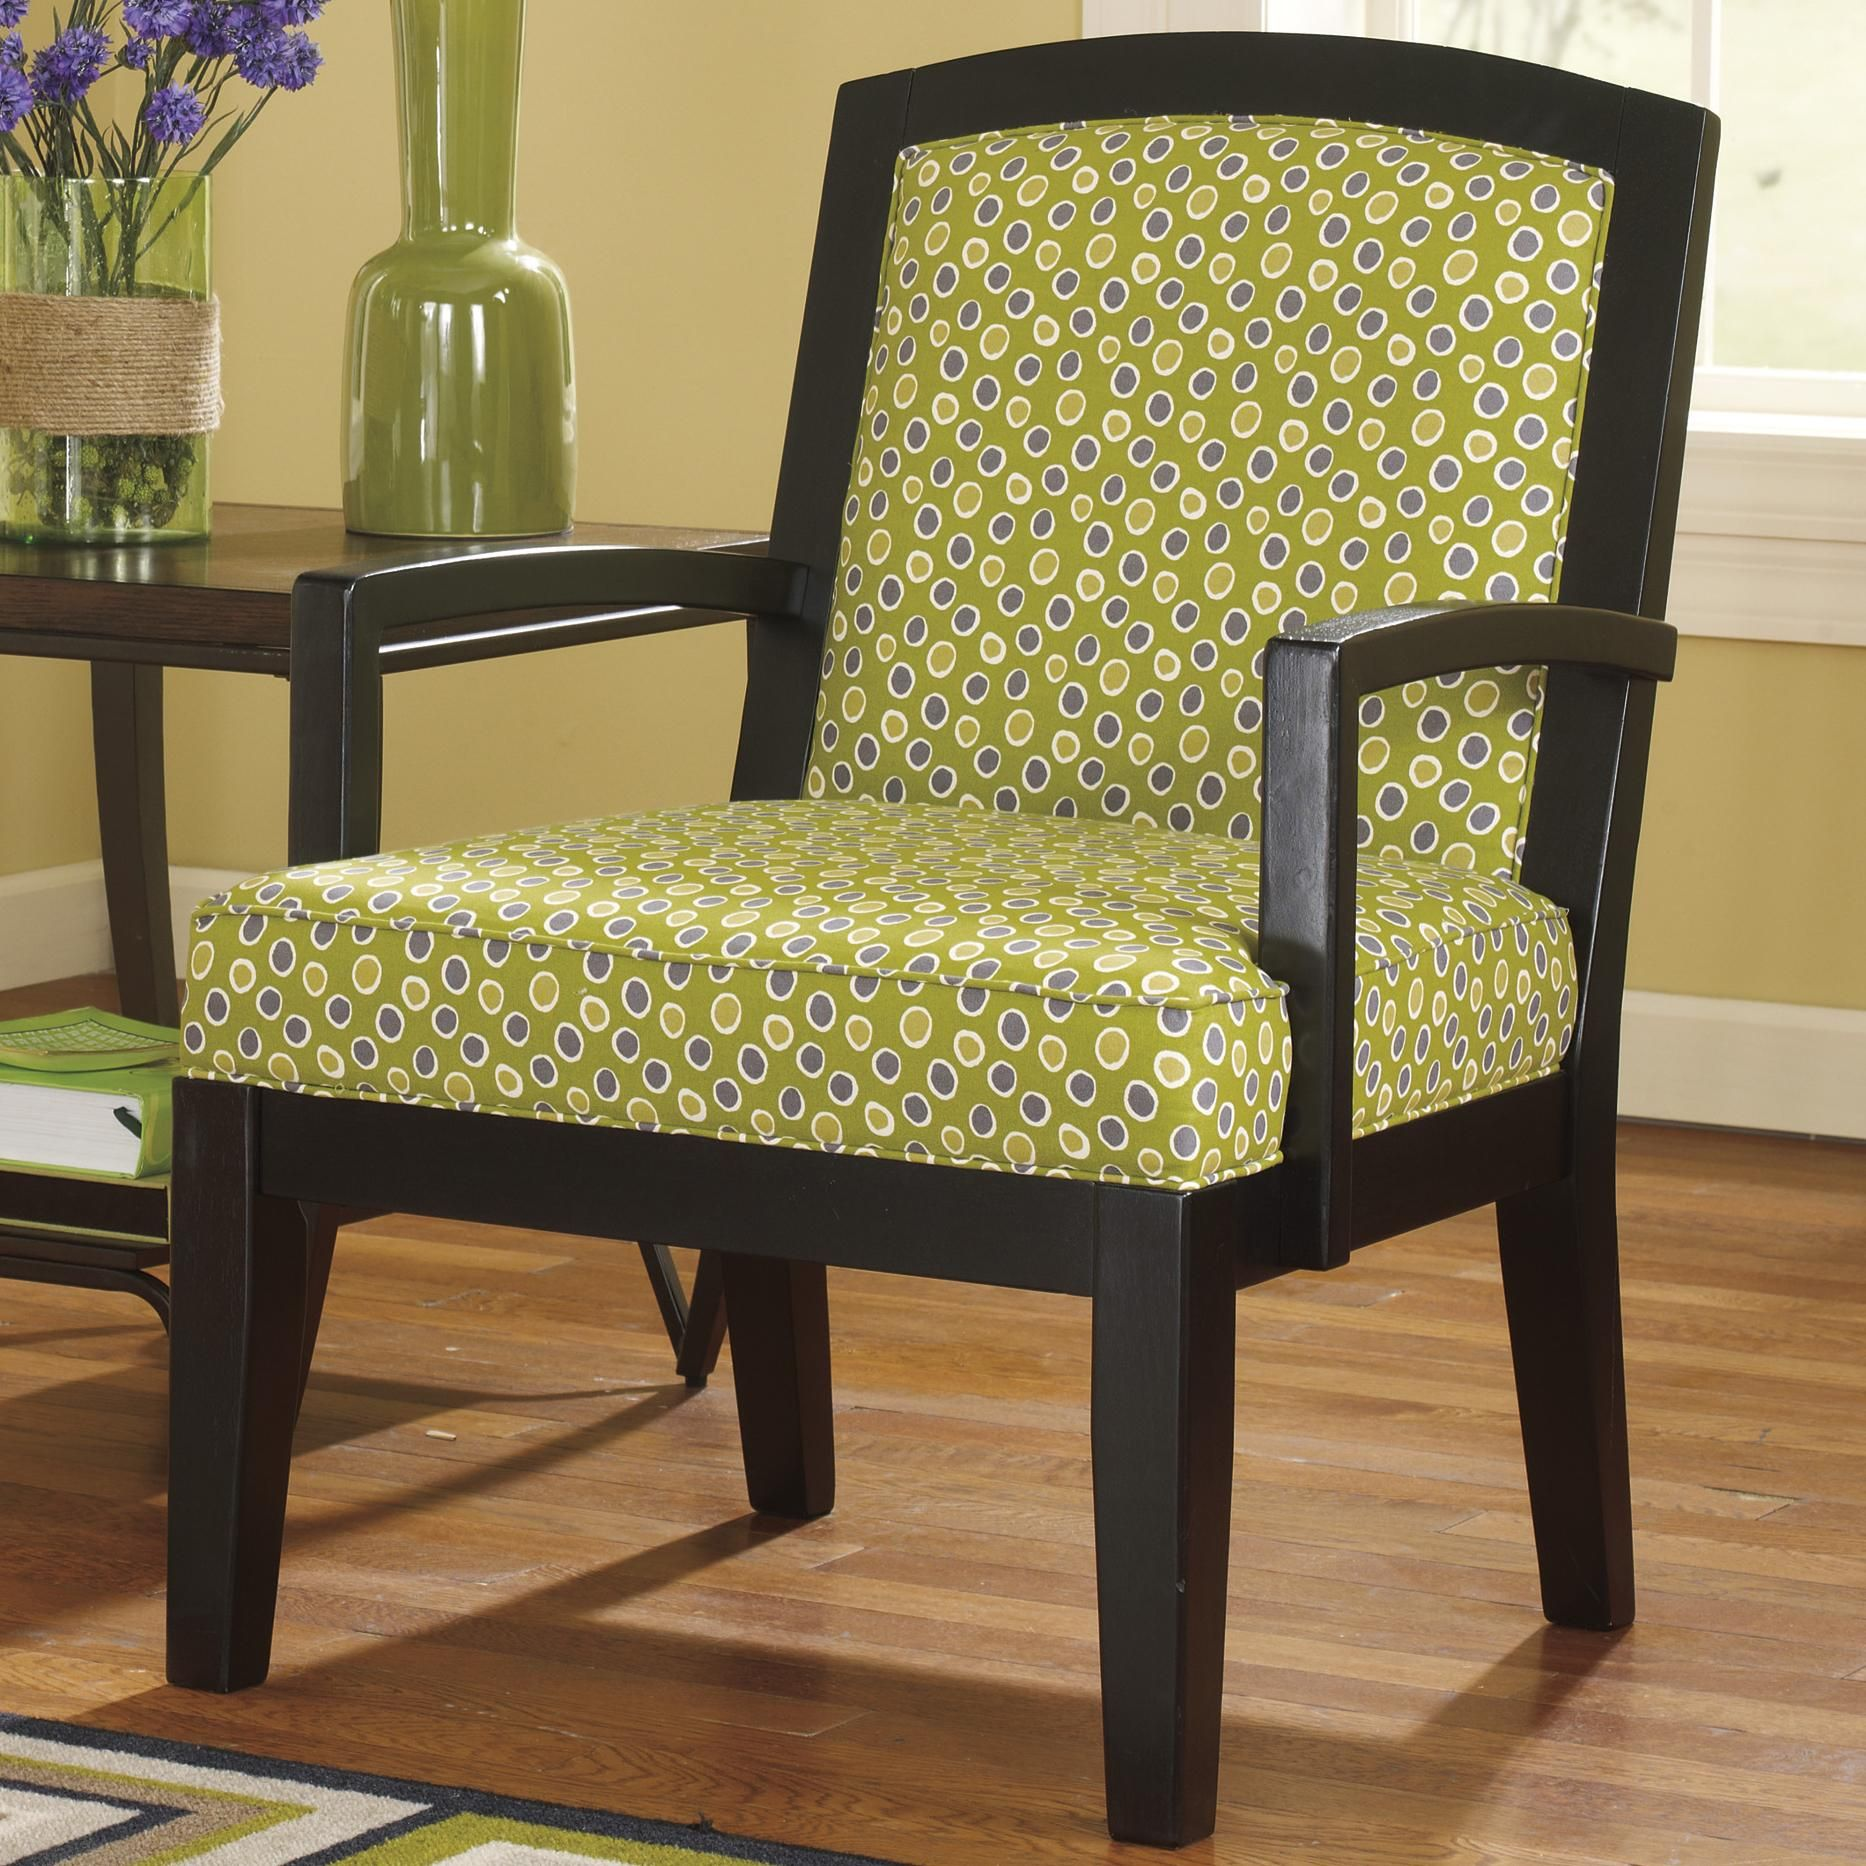 Nolana Accents Citron Accent Chair By Benchcraft Furniture Pinterest Chairs By And